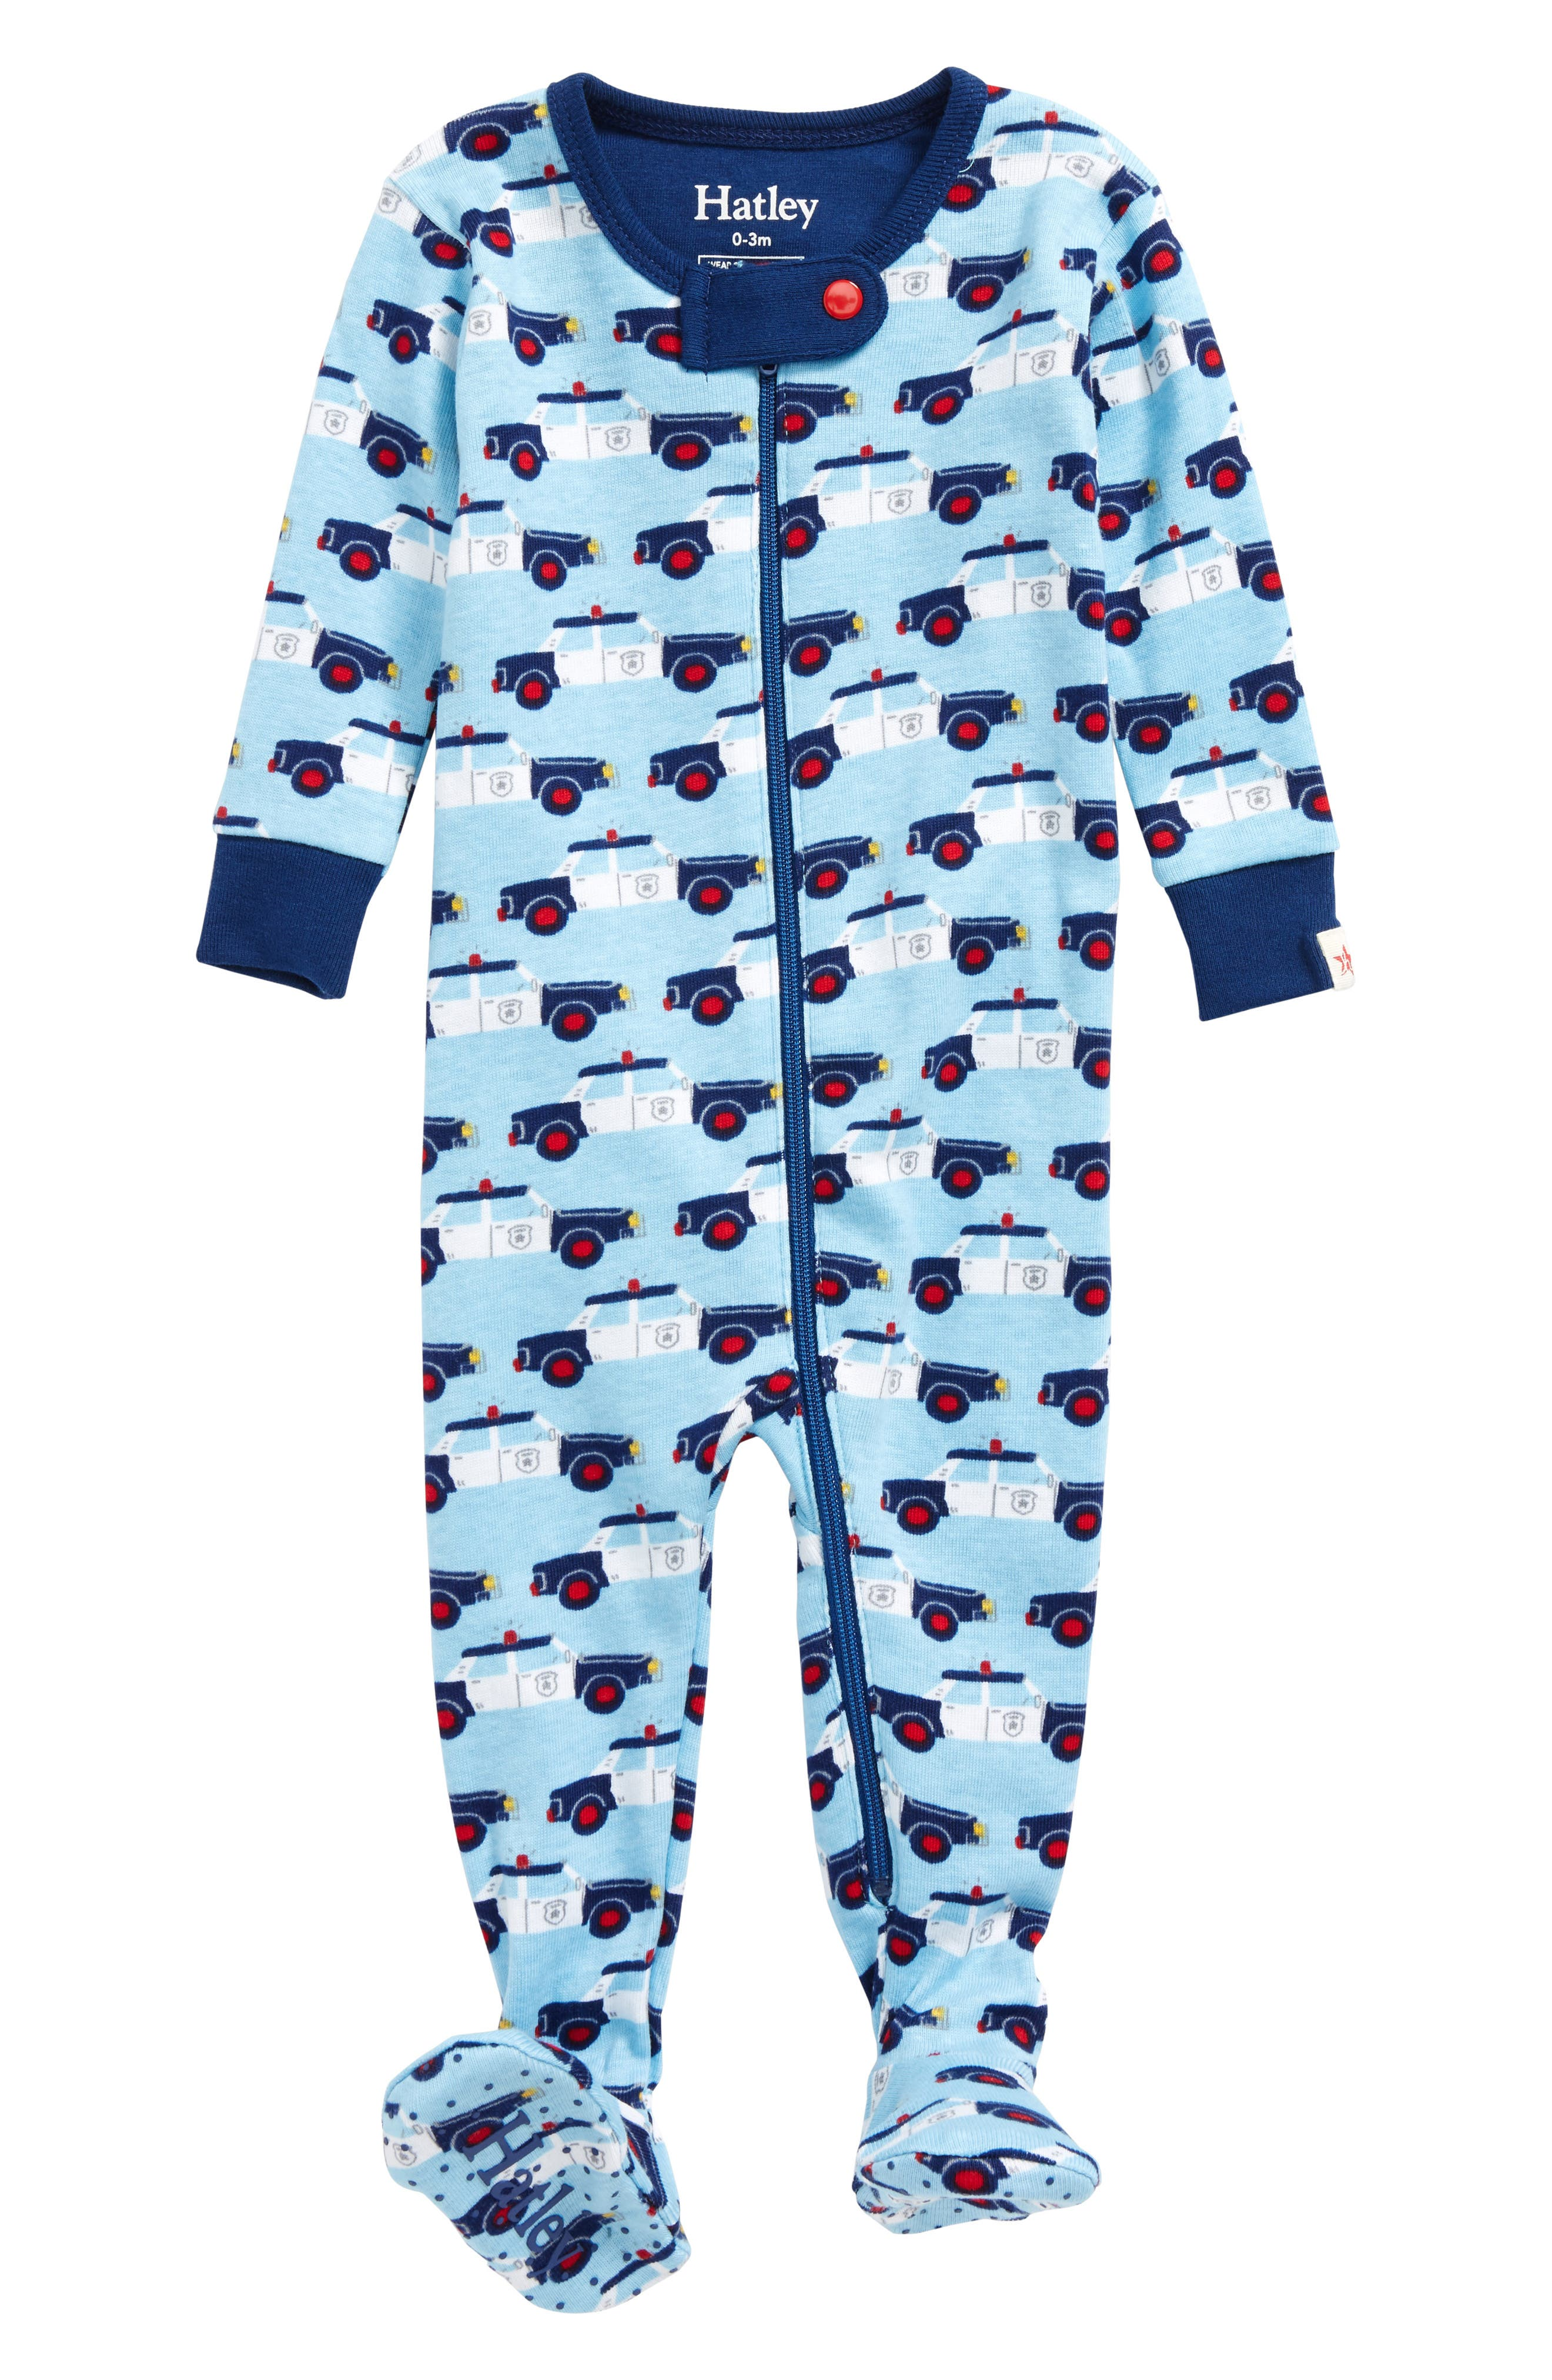 Cop Cars Organic Cotton Fitted One-Piece Pajamas,                             Main thumbnail 1, color,                             Cop Cars